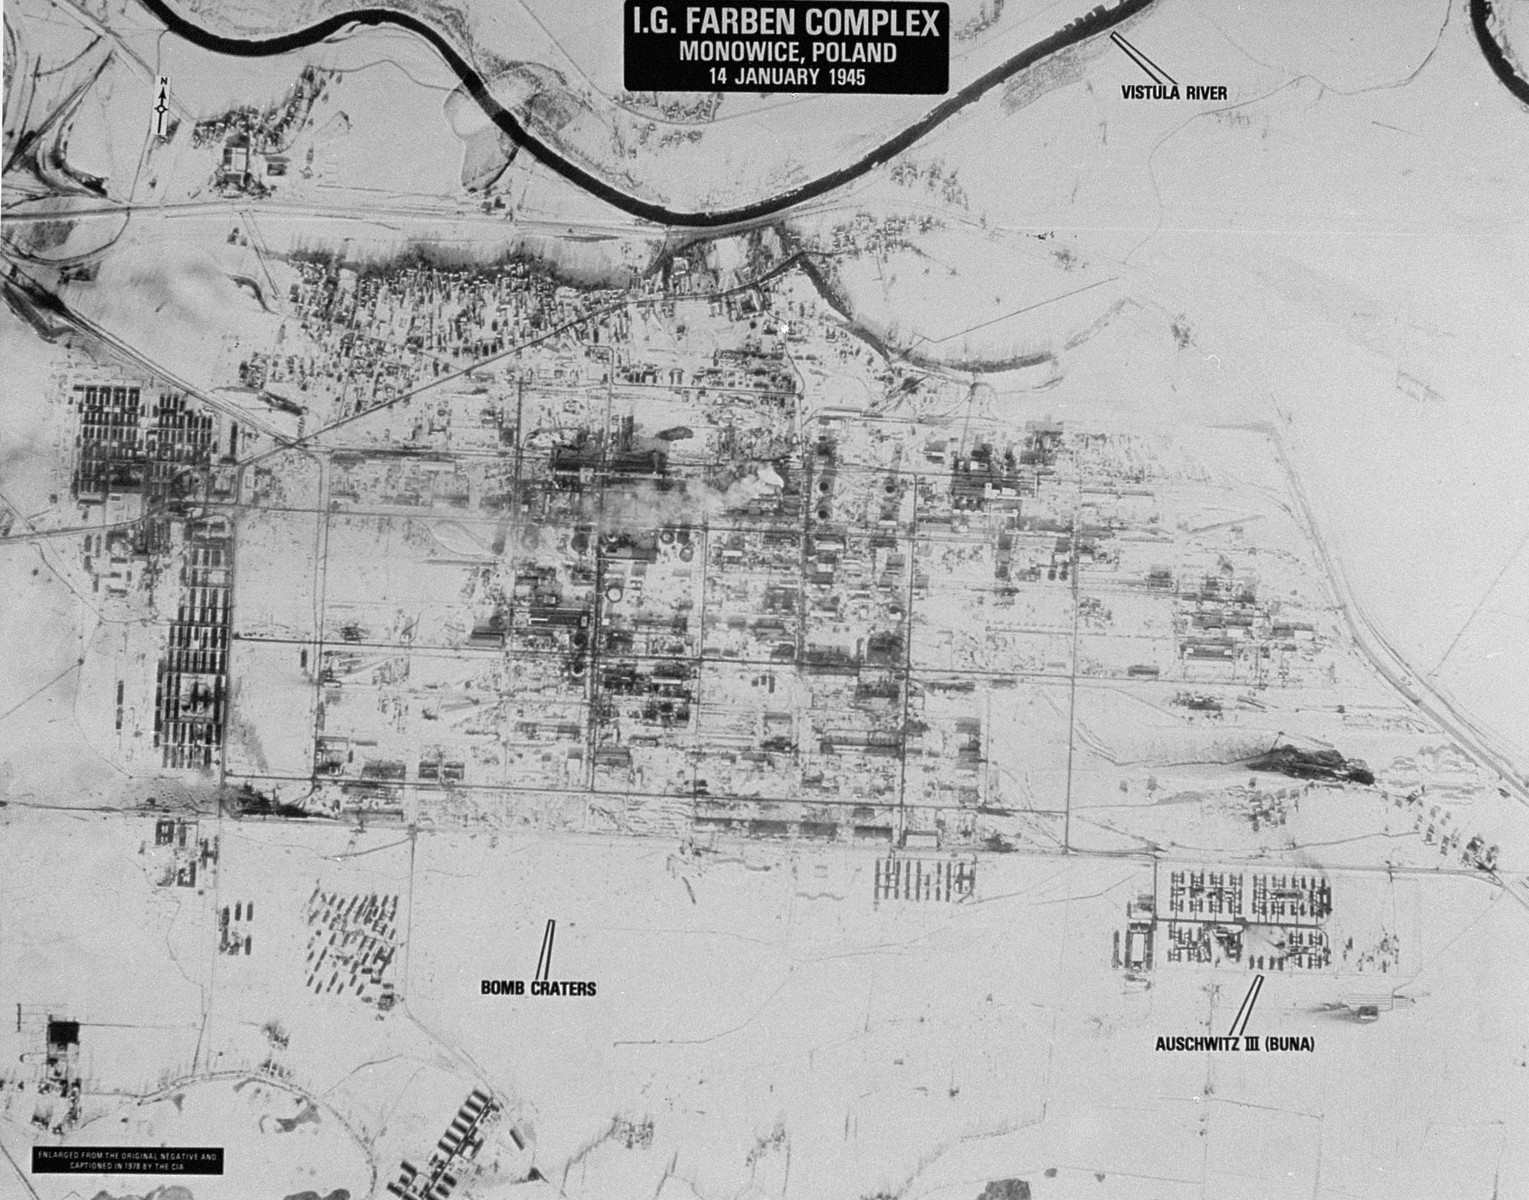 An aerial reconnaissance photograph of the Auschwitz concentration camp showing the I.G. Farben complex.